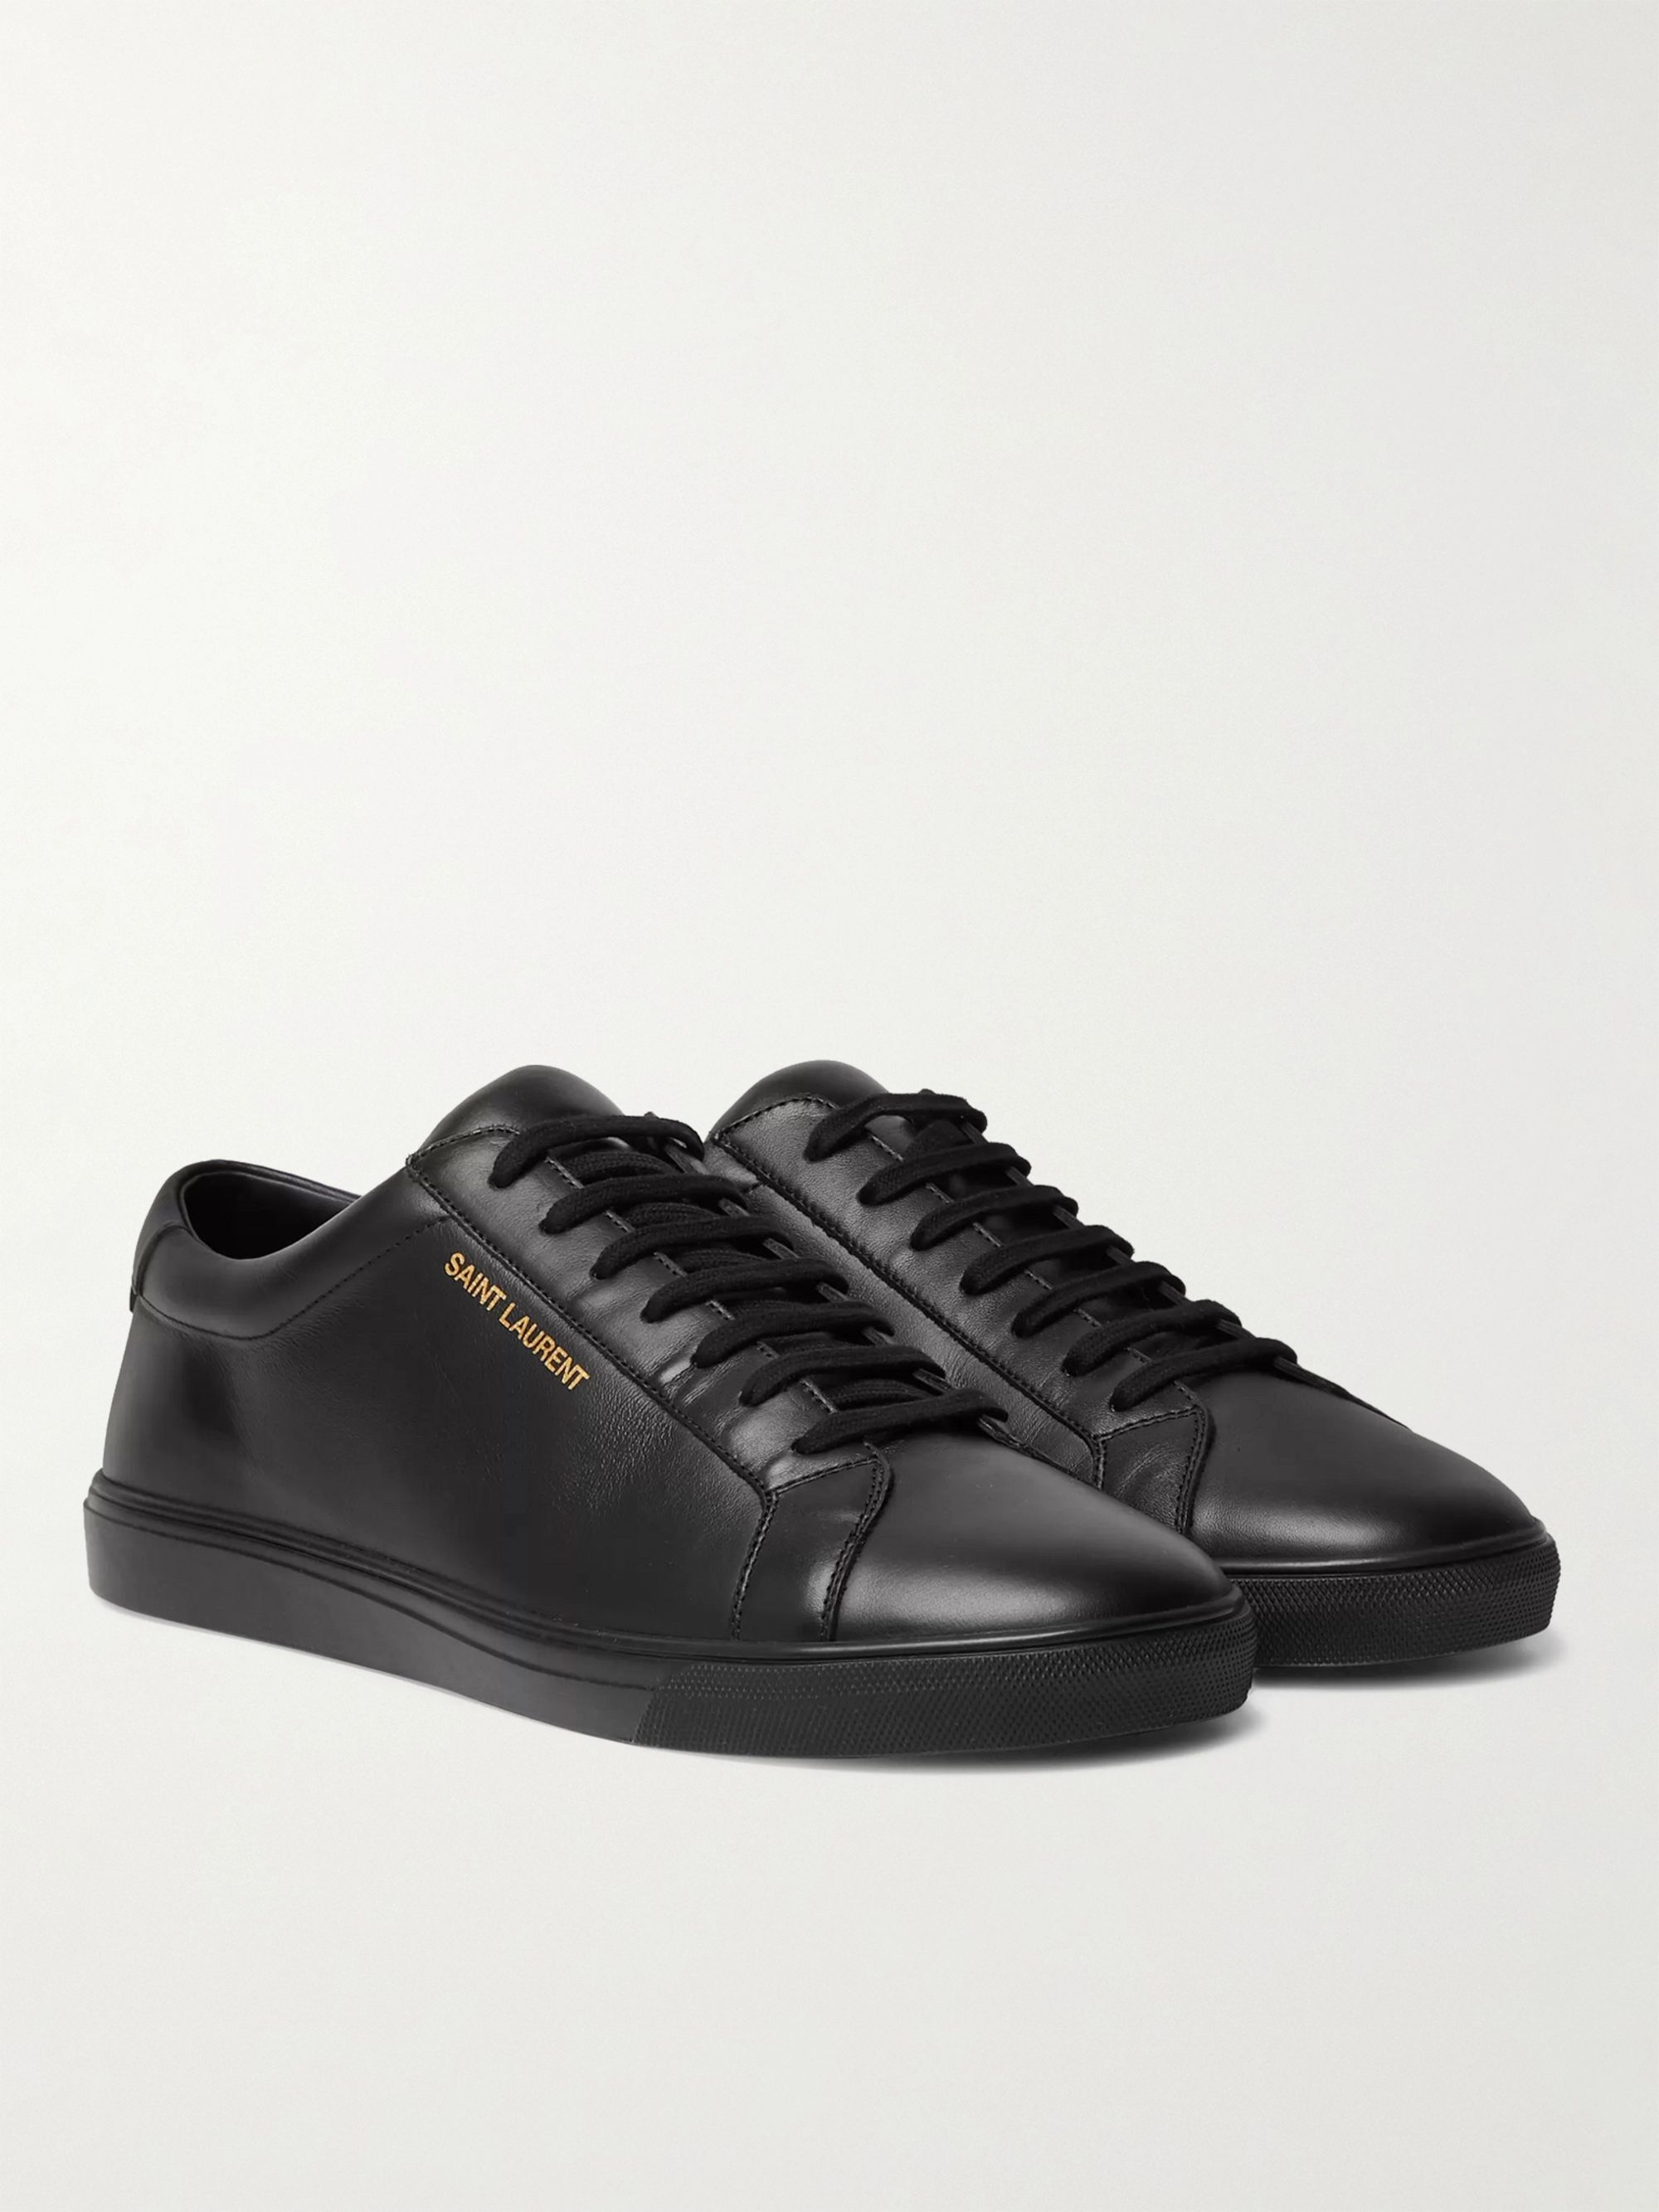 Andy Moon Leather Sneakers